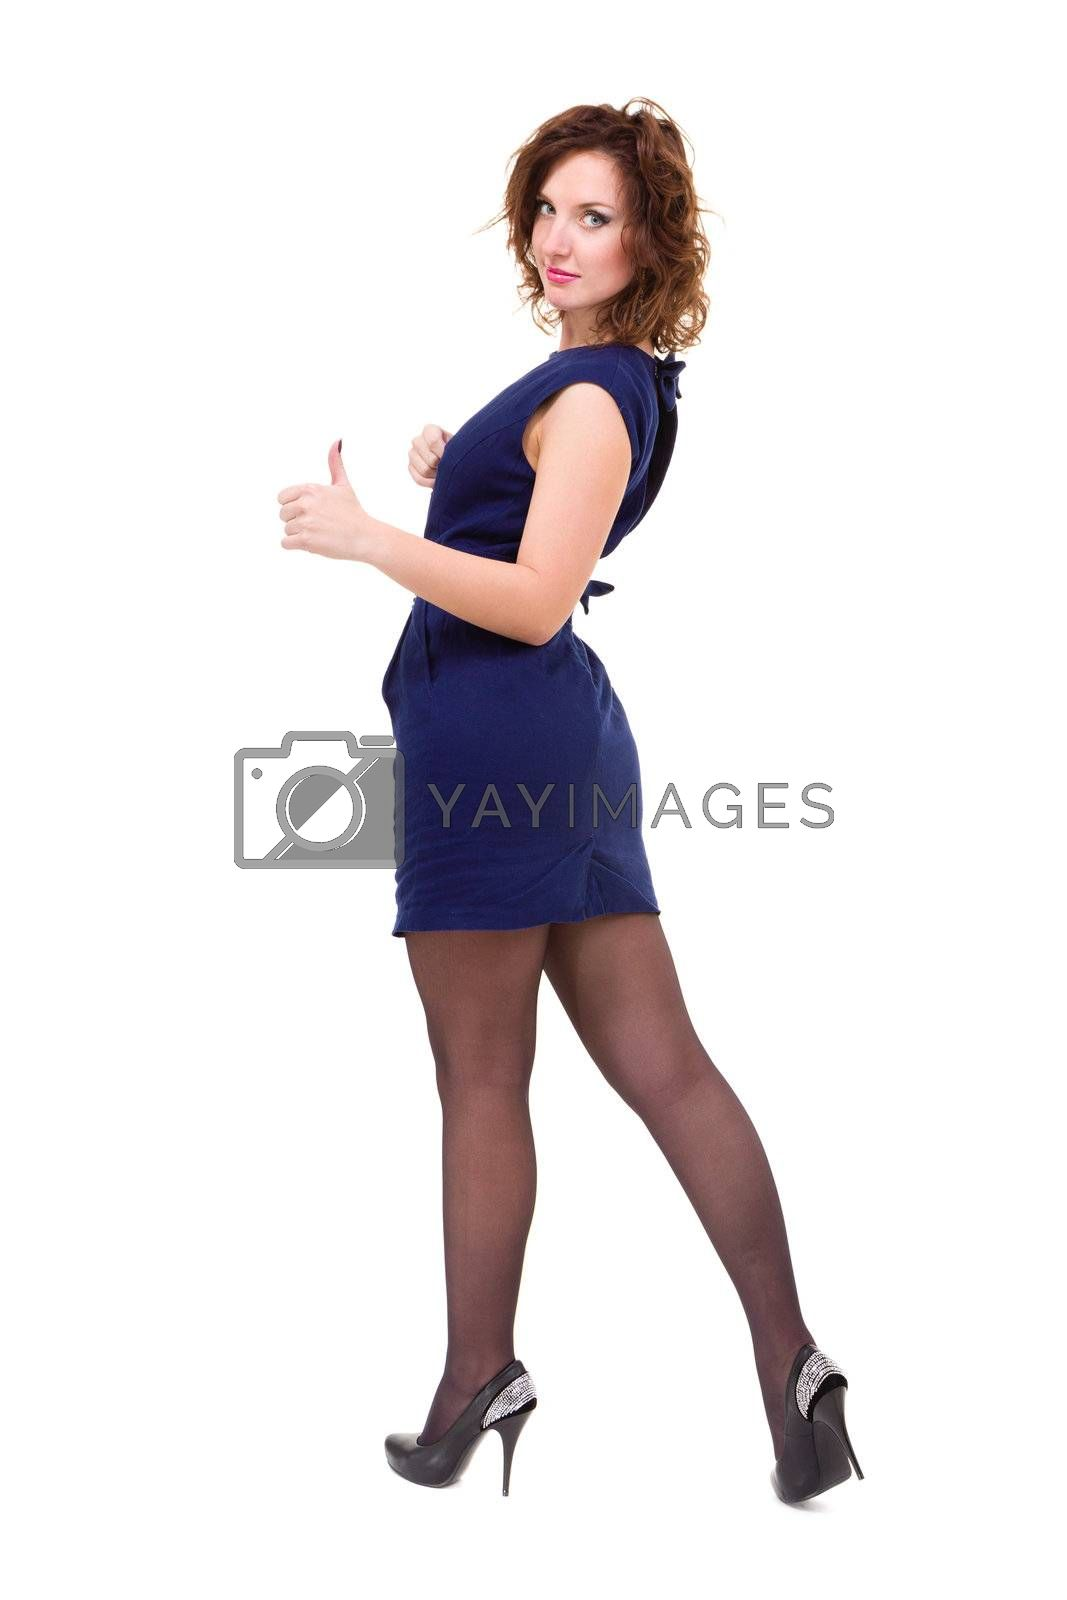 Image of attractive woman showing thumbsup, isolated on white